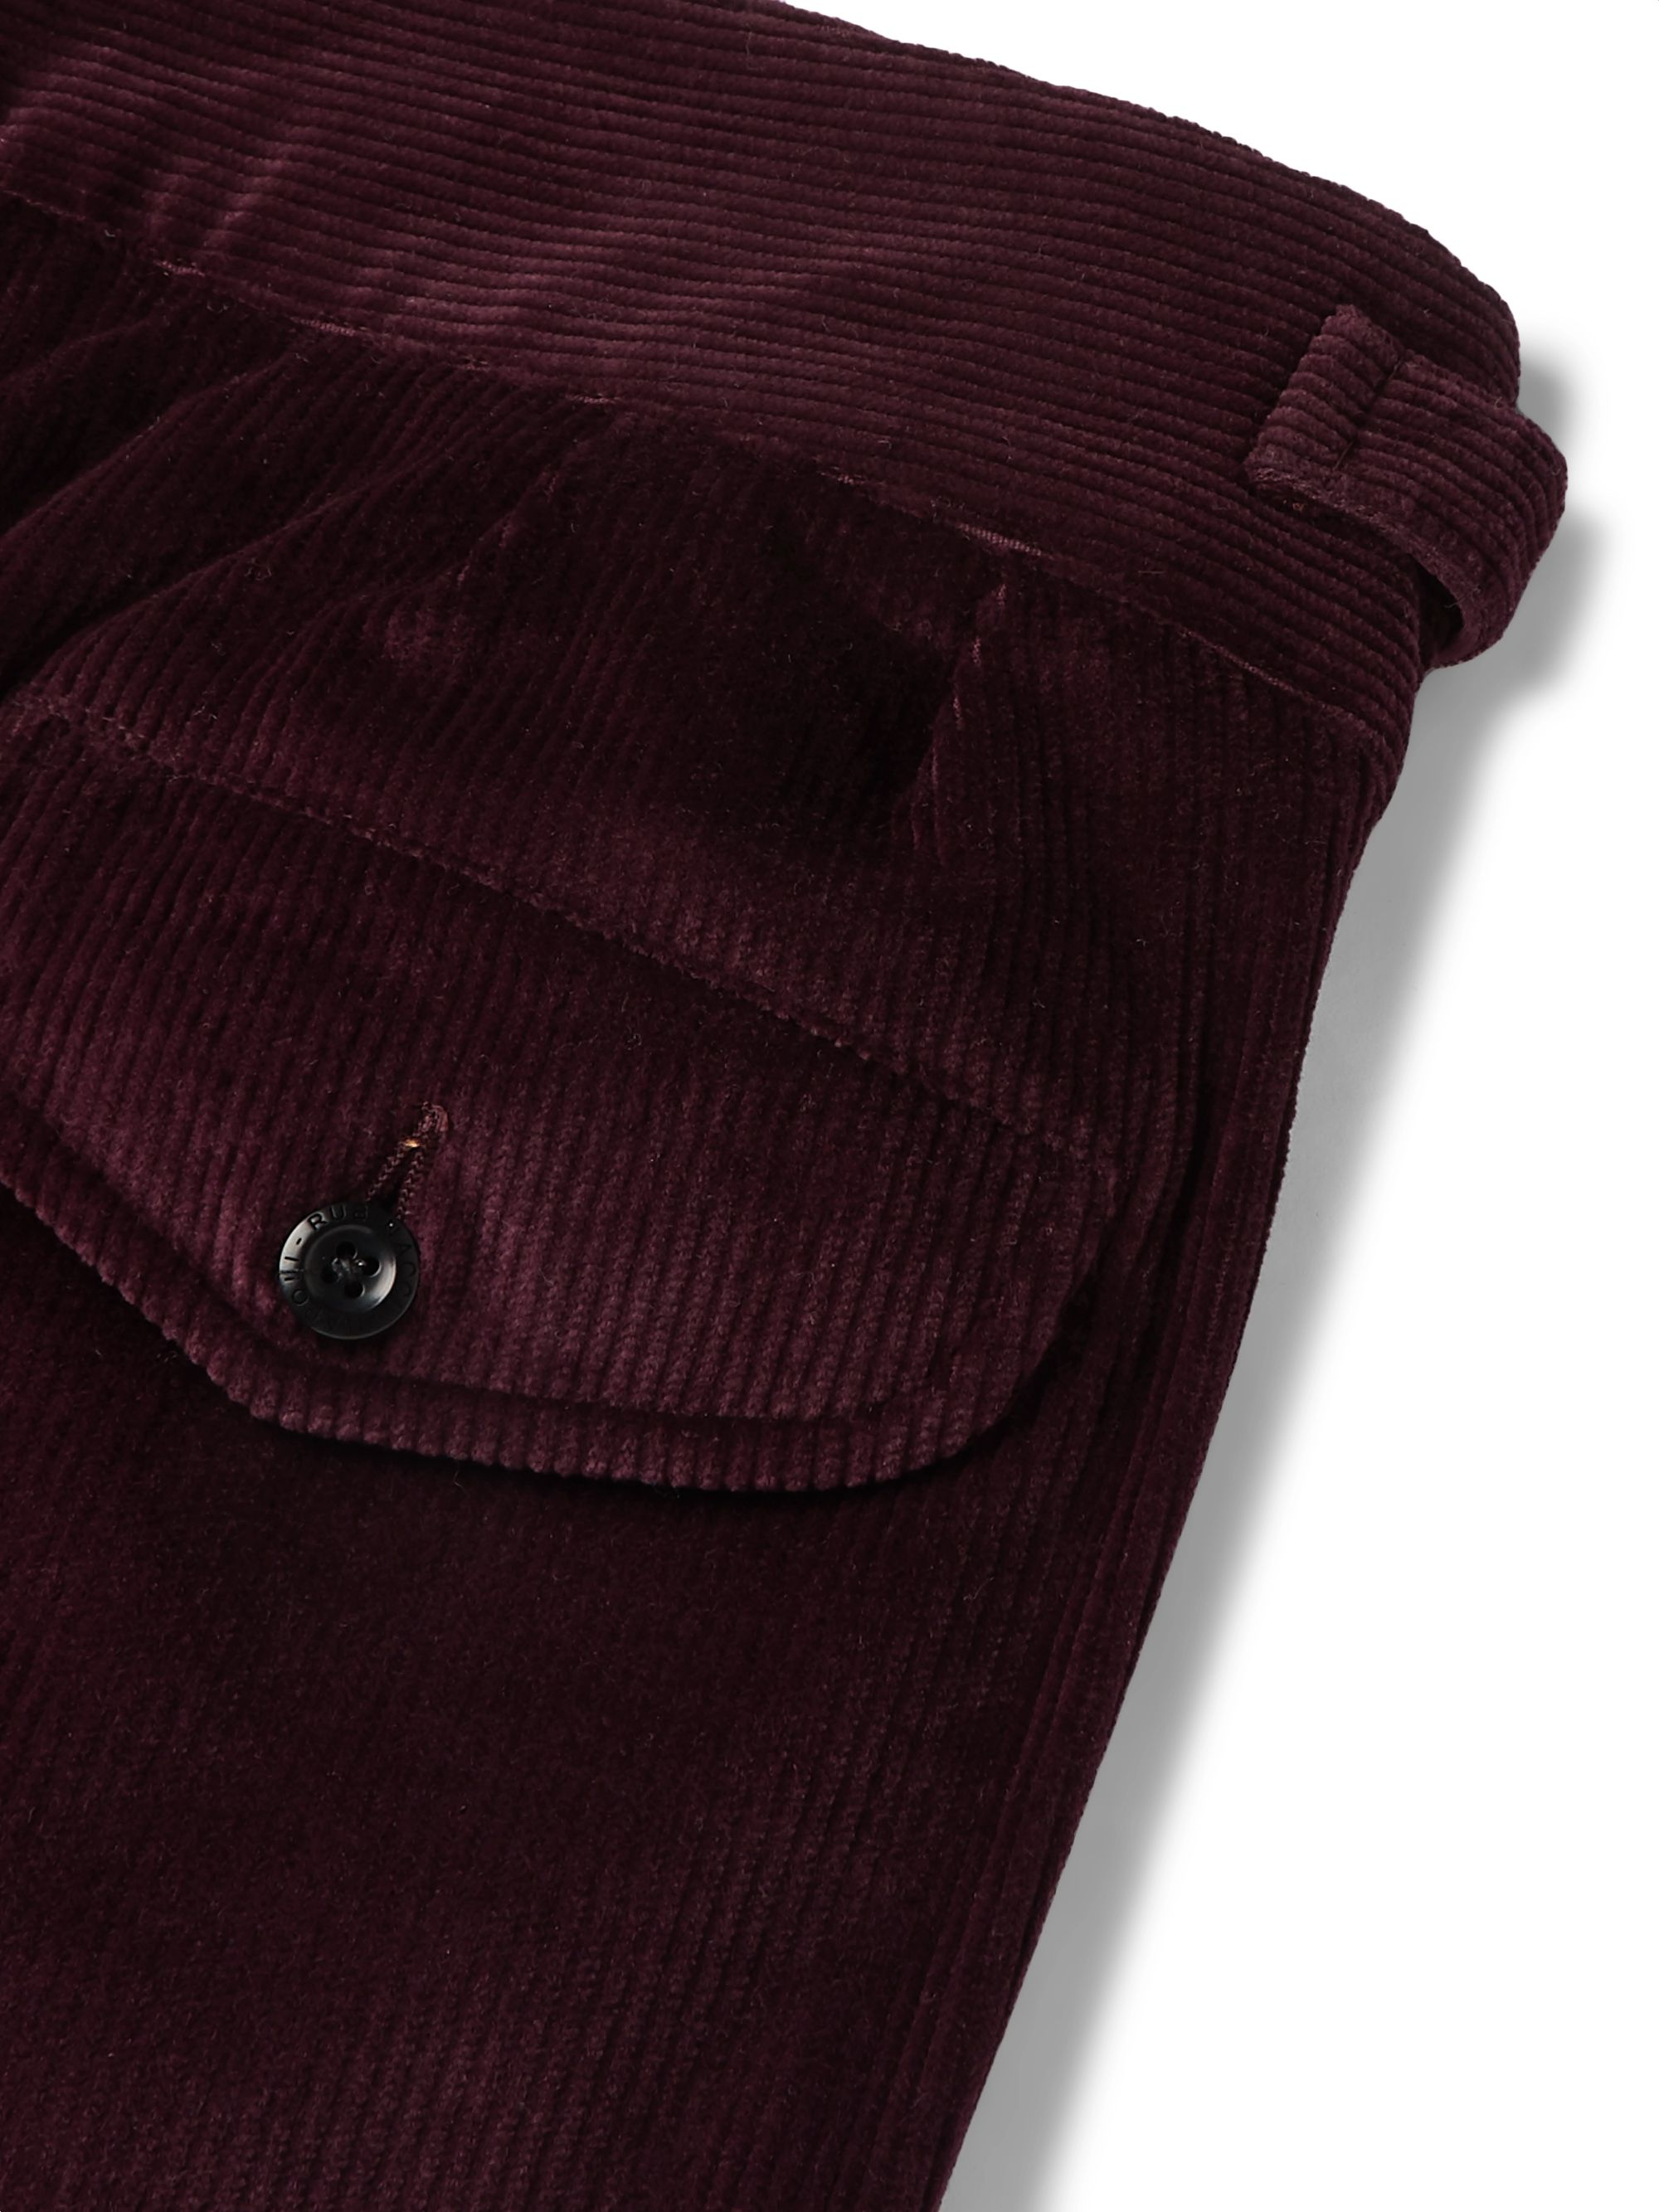 Rubinacci Manny Pleated Cotton-Blend Corduroy Trousers